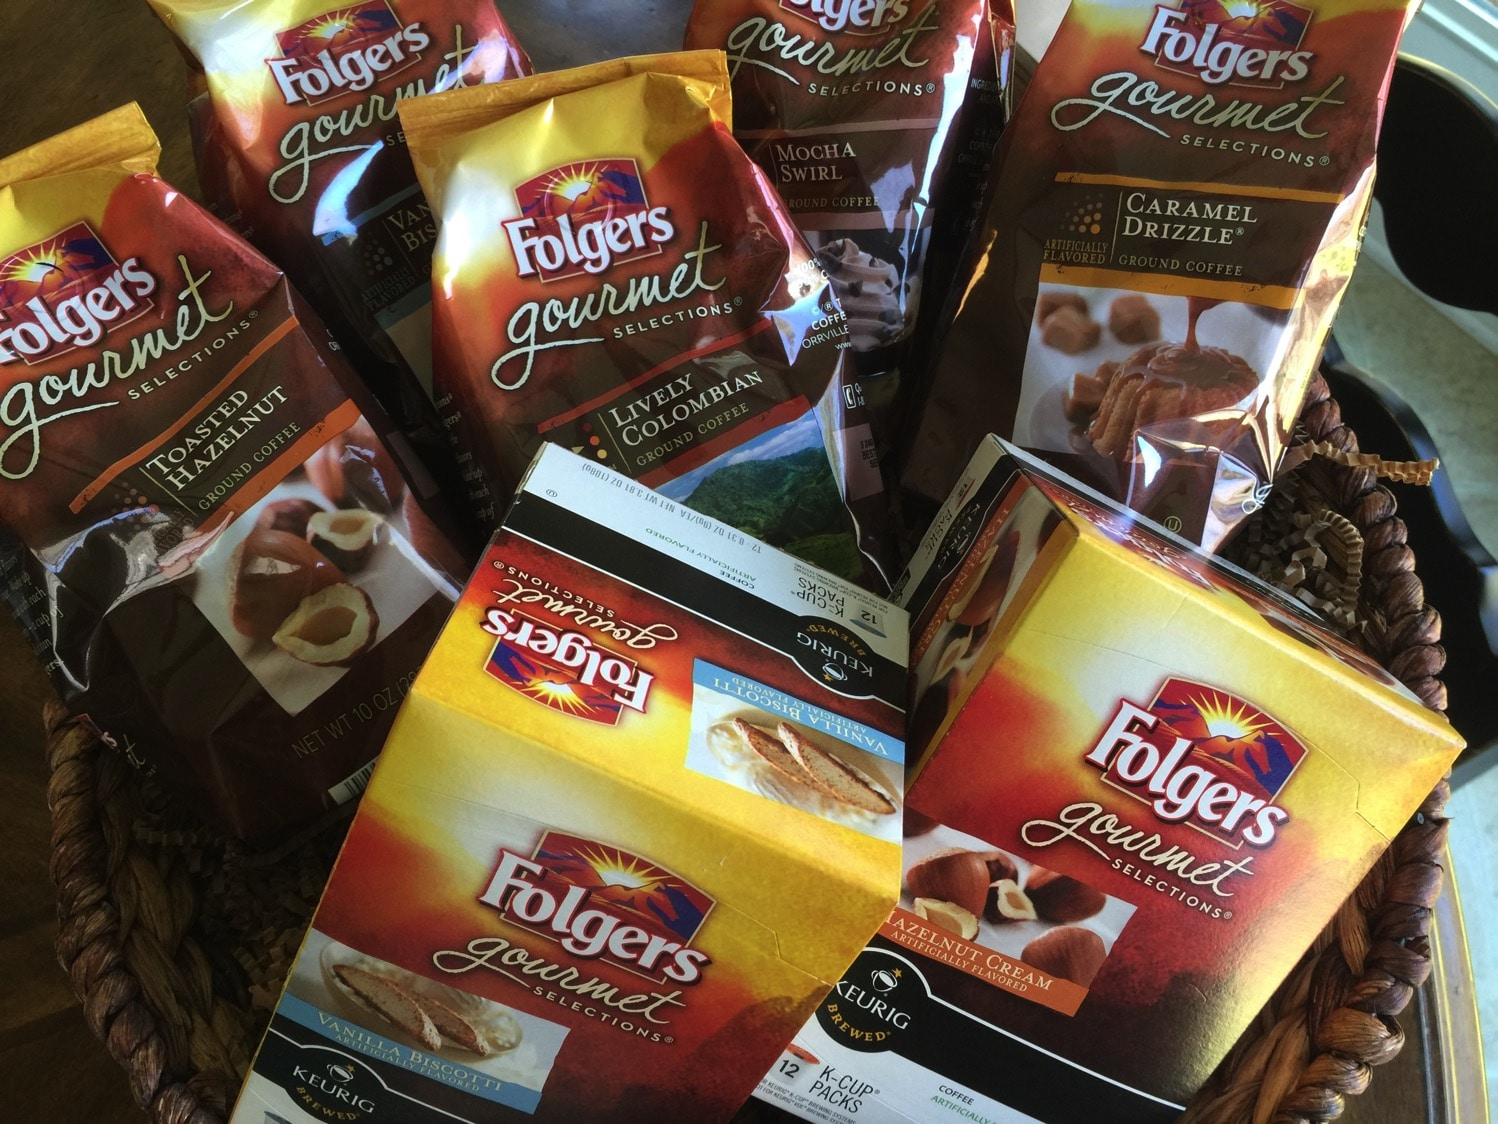 Folgers Gourmet Selections